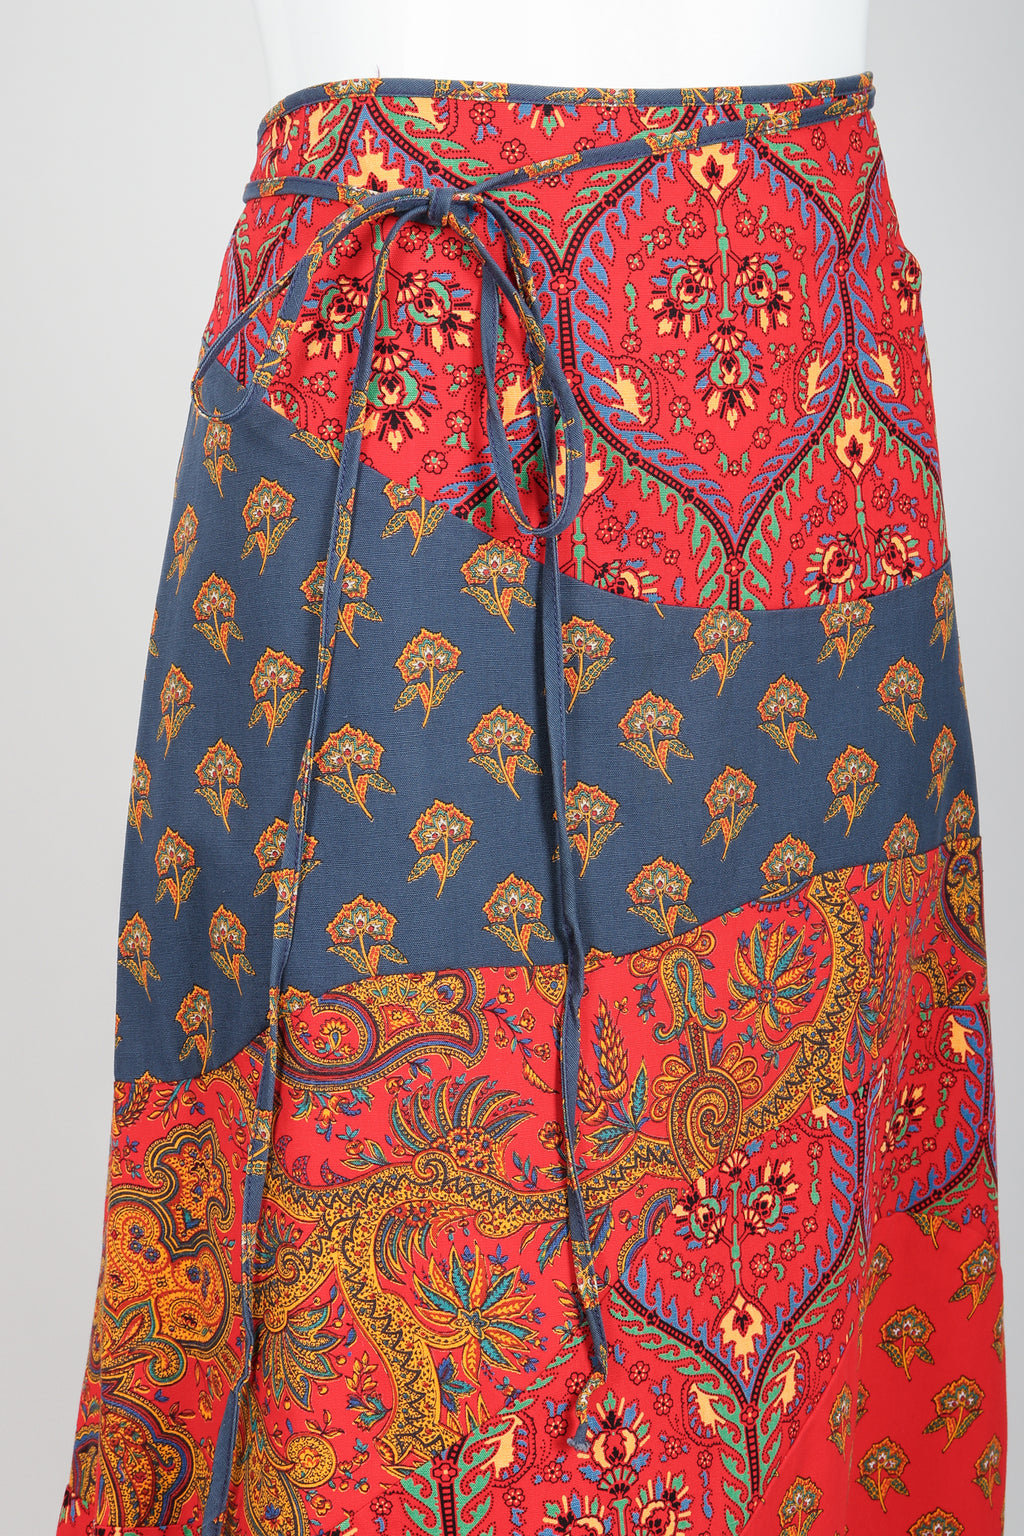 Vintage Anne Klein Flower & Paisley Tie Wrap Skirt Angle at Recess LA